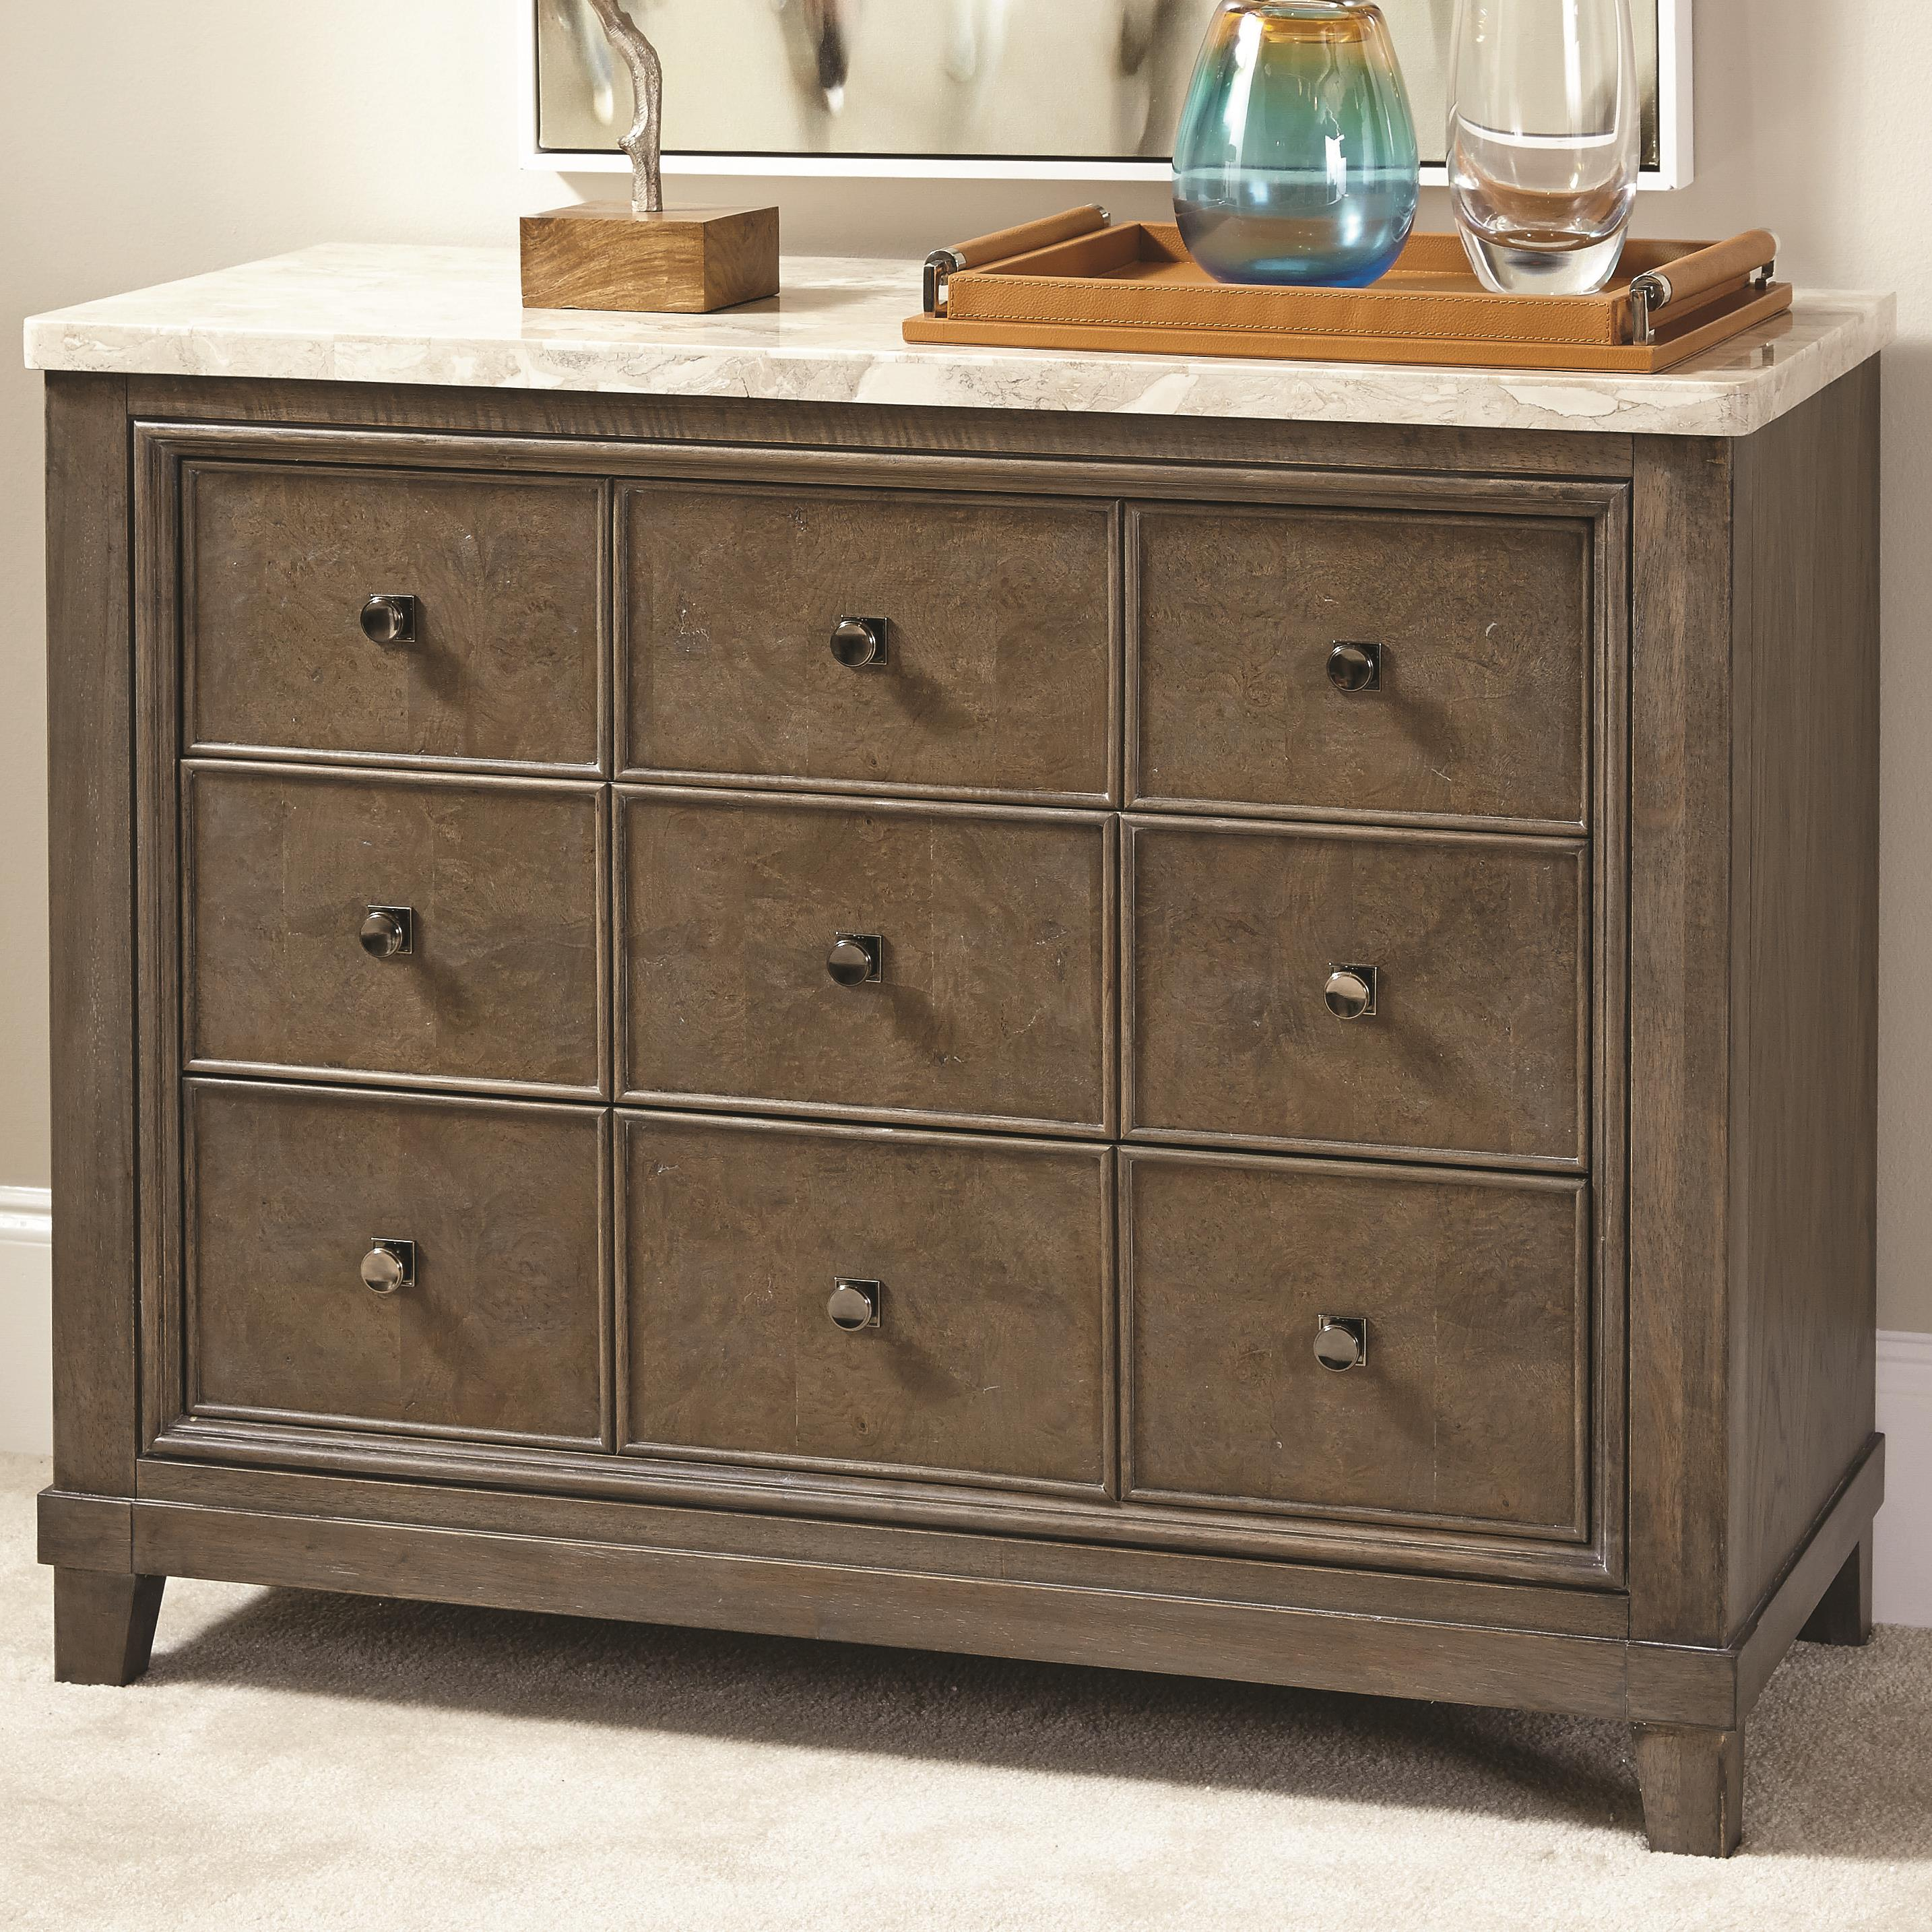 Stone topped apothecary hall chest with drawers and